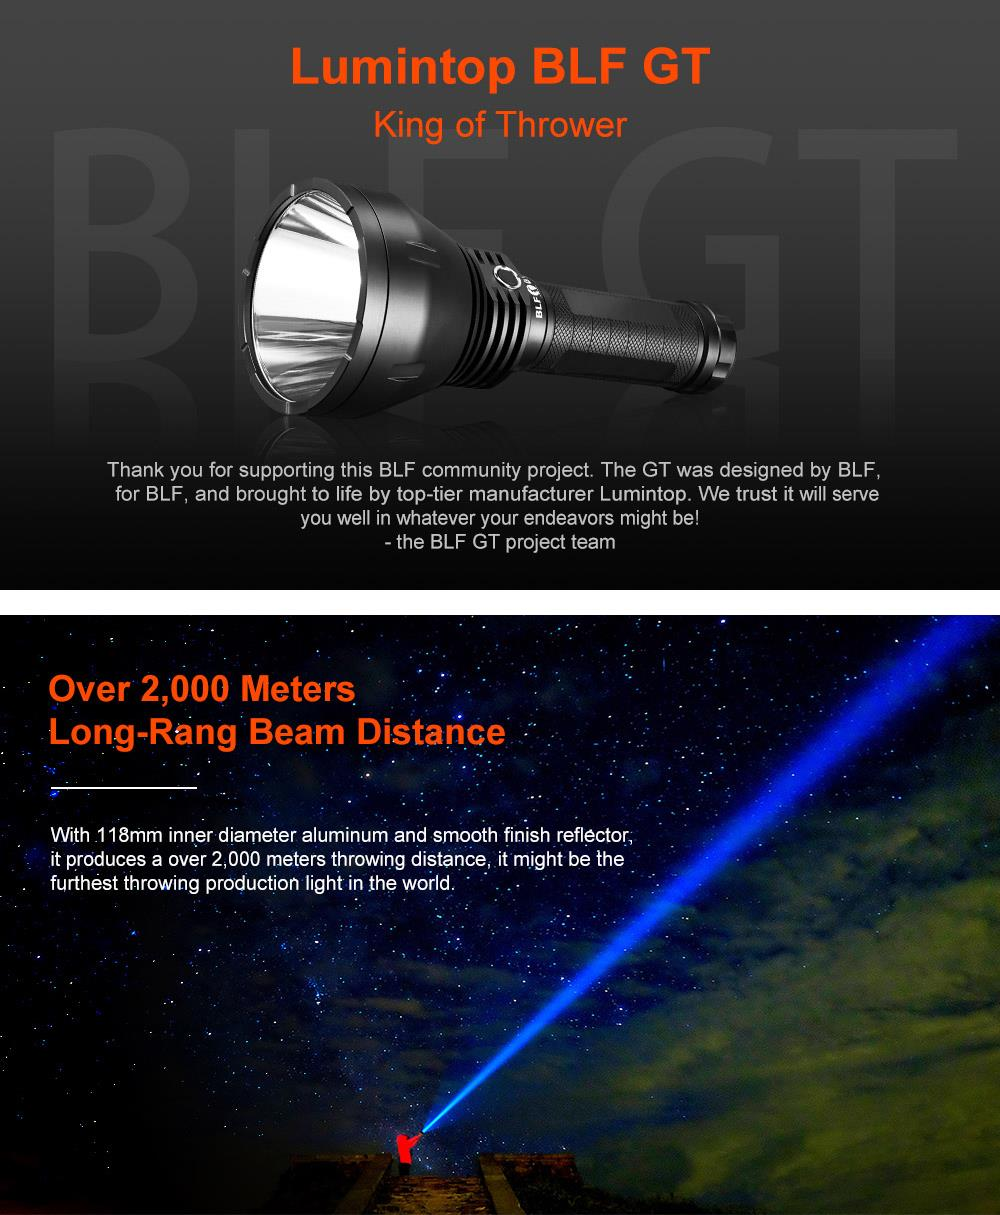 Lumintop BLF GT XHP35 HI 35W 2000LM 0%-100% Stepless Dimming Professional Procedure Super Bright Long Thrower King LED Flashlight